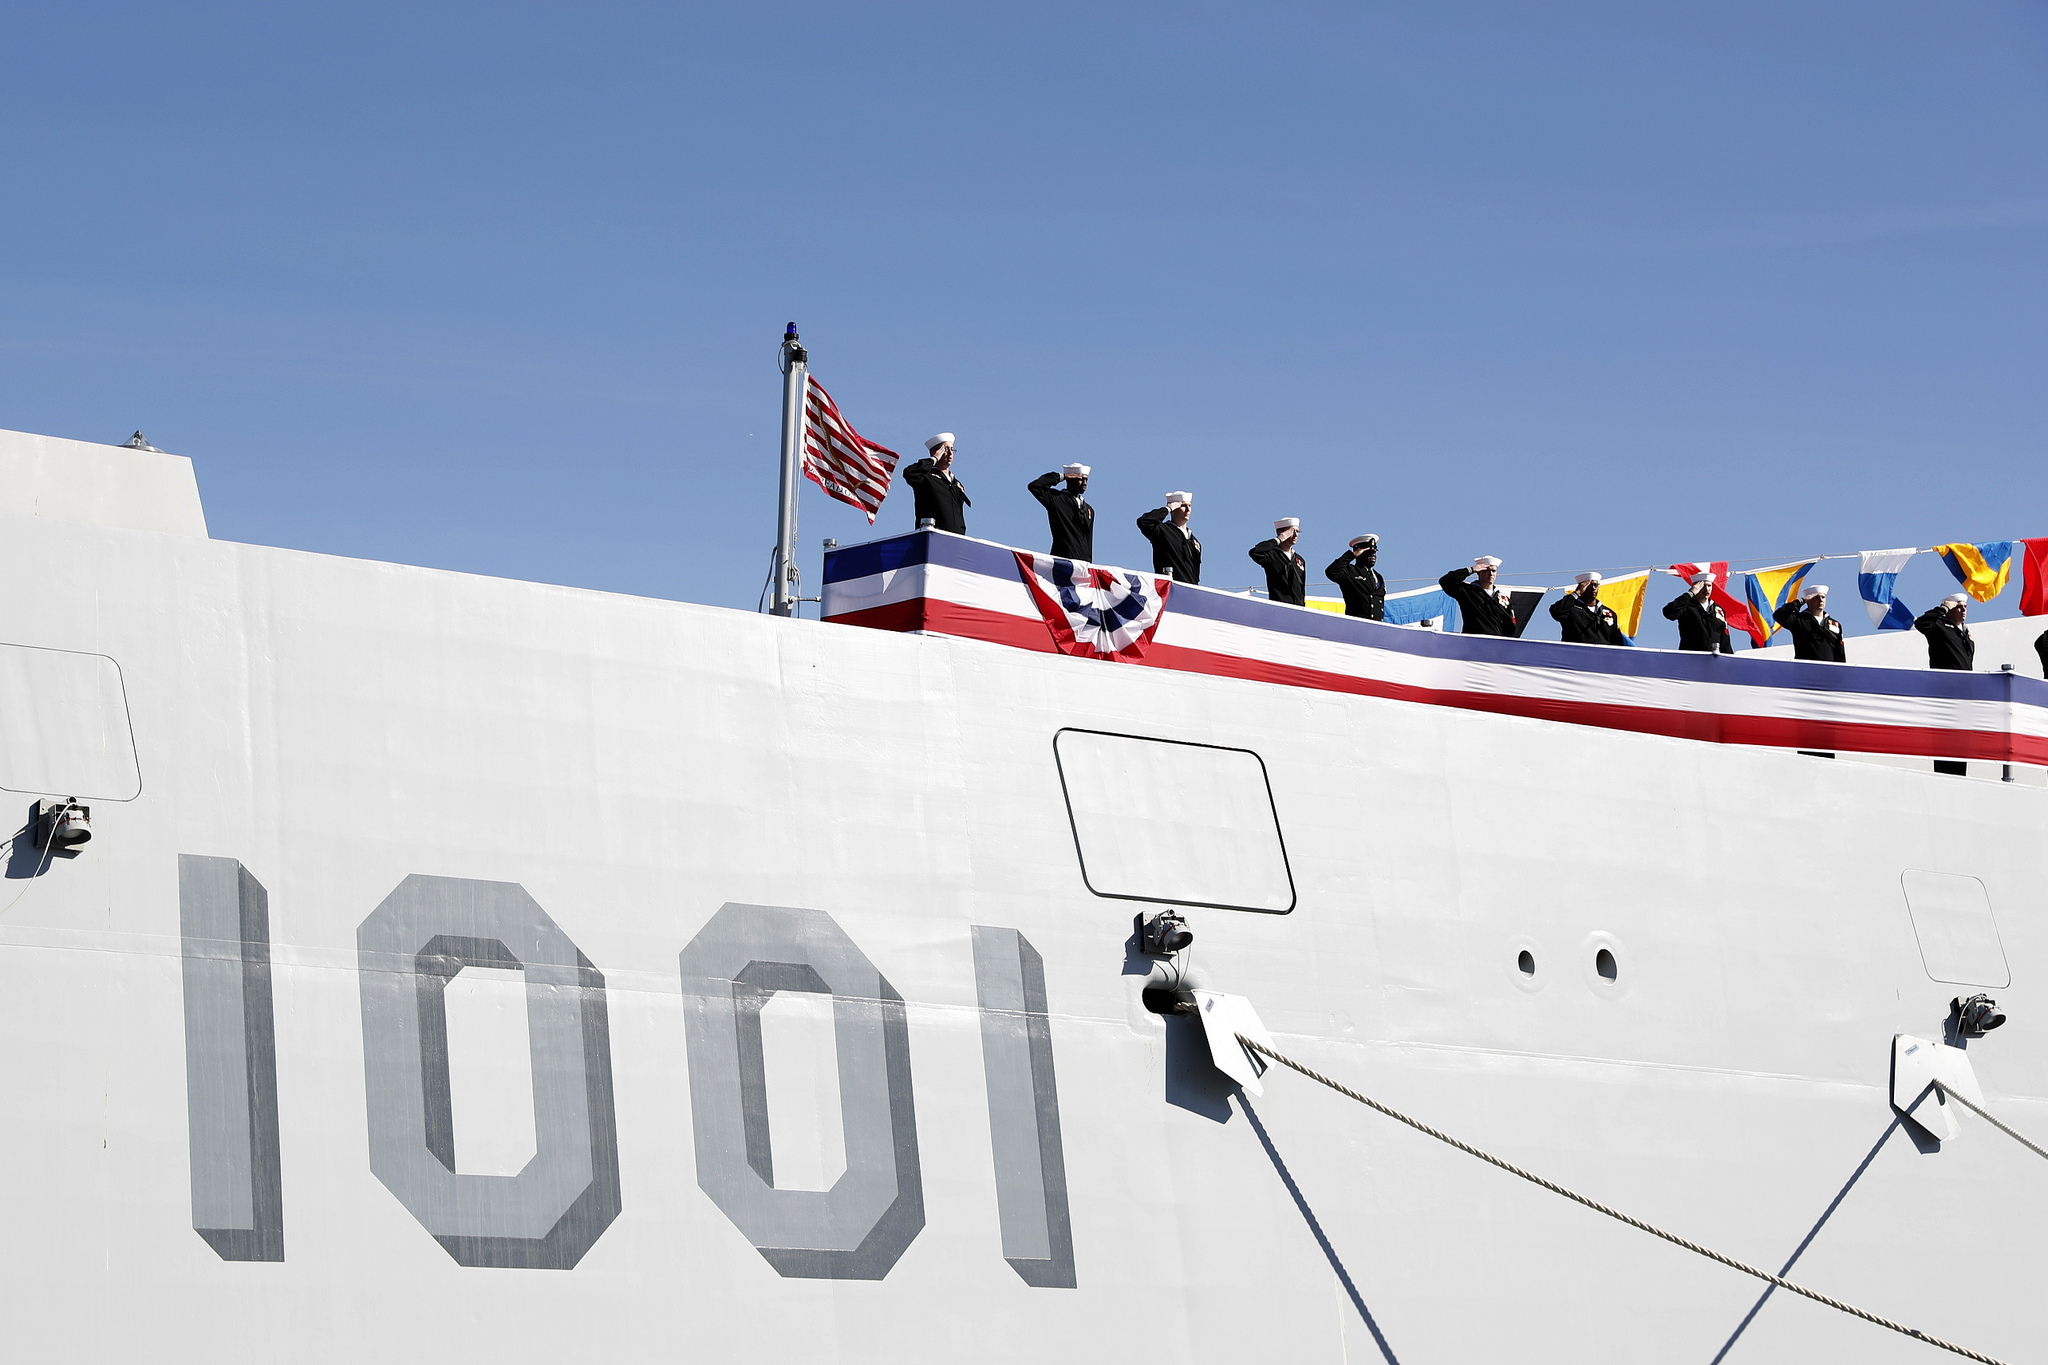 The crew of the Zumwalt-class guided-missile destroyer USS Michael Monsoor (DDG 1001) brings the ship to life during its commissioning ceremony on Jan. 26, 2019, in San Diego. Michael Monsoor is the second Zumwalt-class destroyer to enter the fleet. It is the first Navy combat ship named for fallen Master-at-Arms 2nd Class (SEAL) Michael Monsoor, who was posthumously awarded the Medal of Honor for his heroic actions while serving in Ramadi, Iraq, in 2006. (Mass Communication Specialist 1st Class Peter Burghart/Navy)